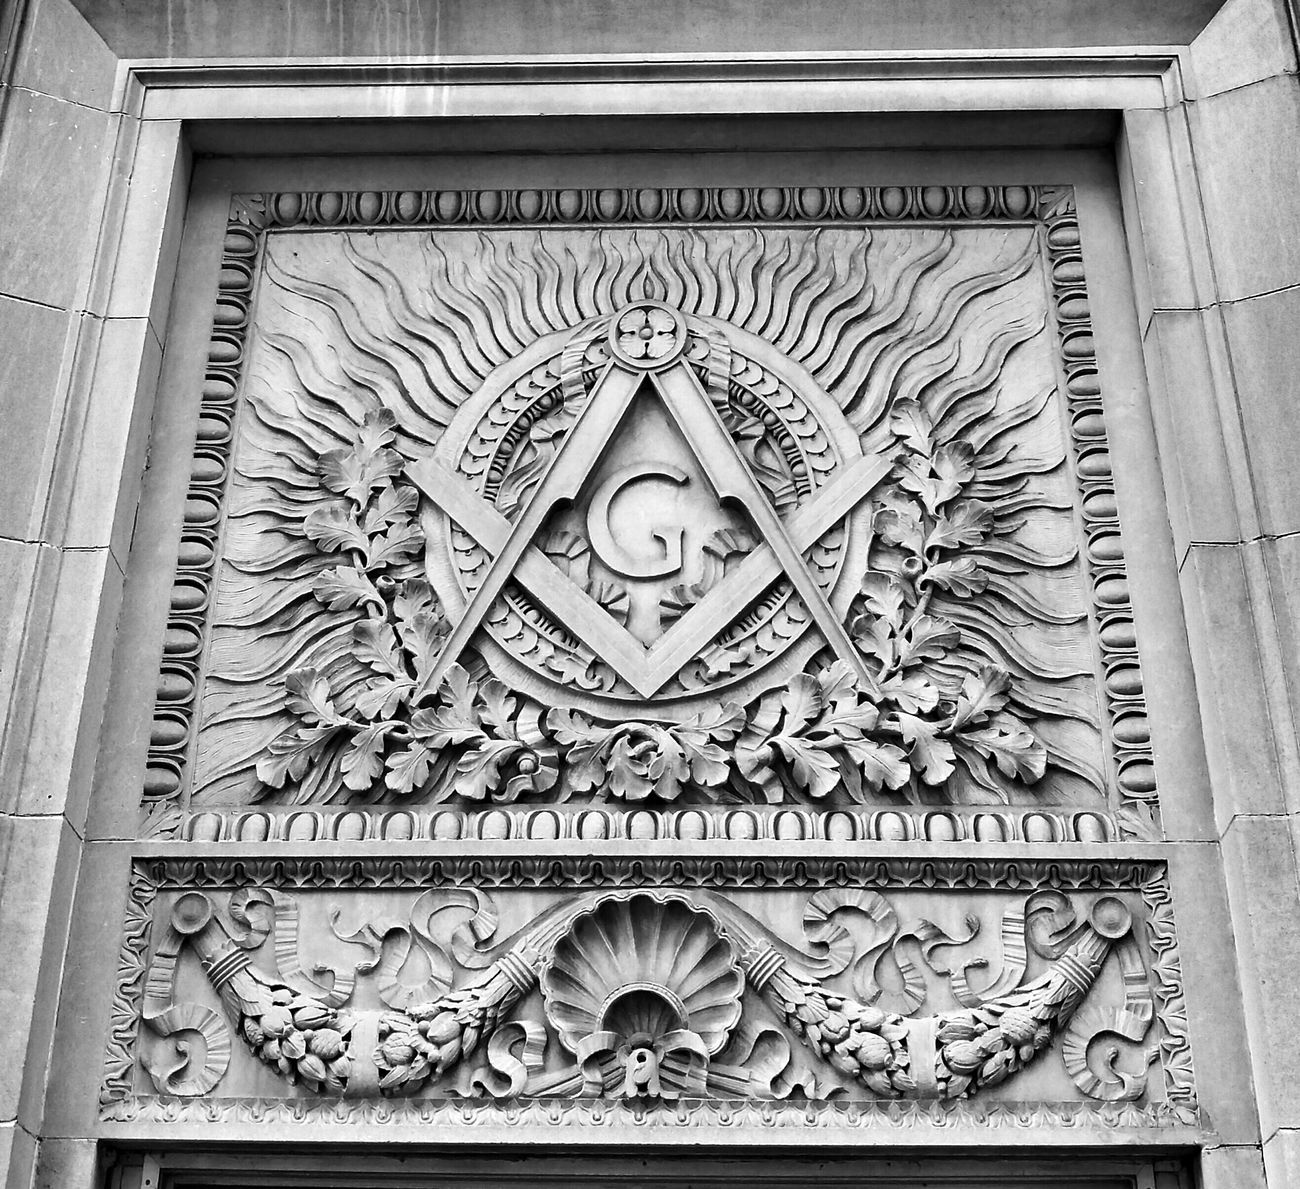 Freemason Sign Beautiful Stonework Relief Sculpture